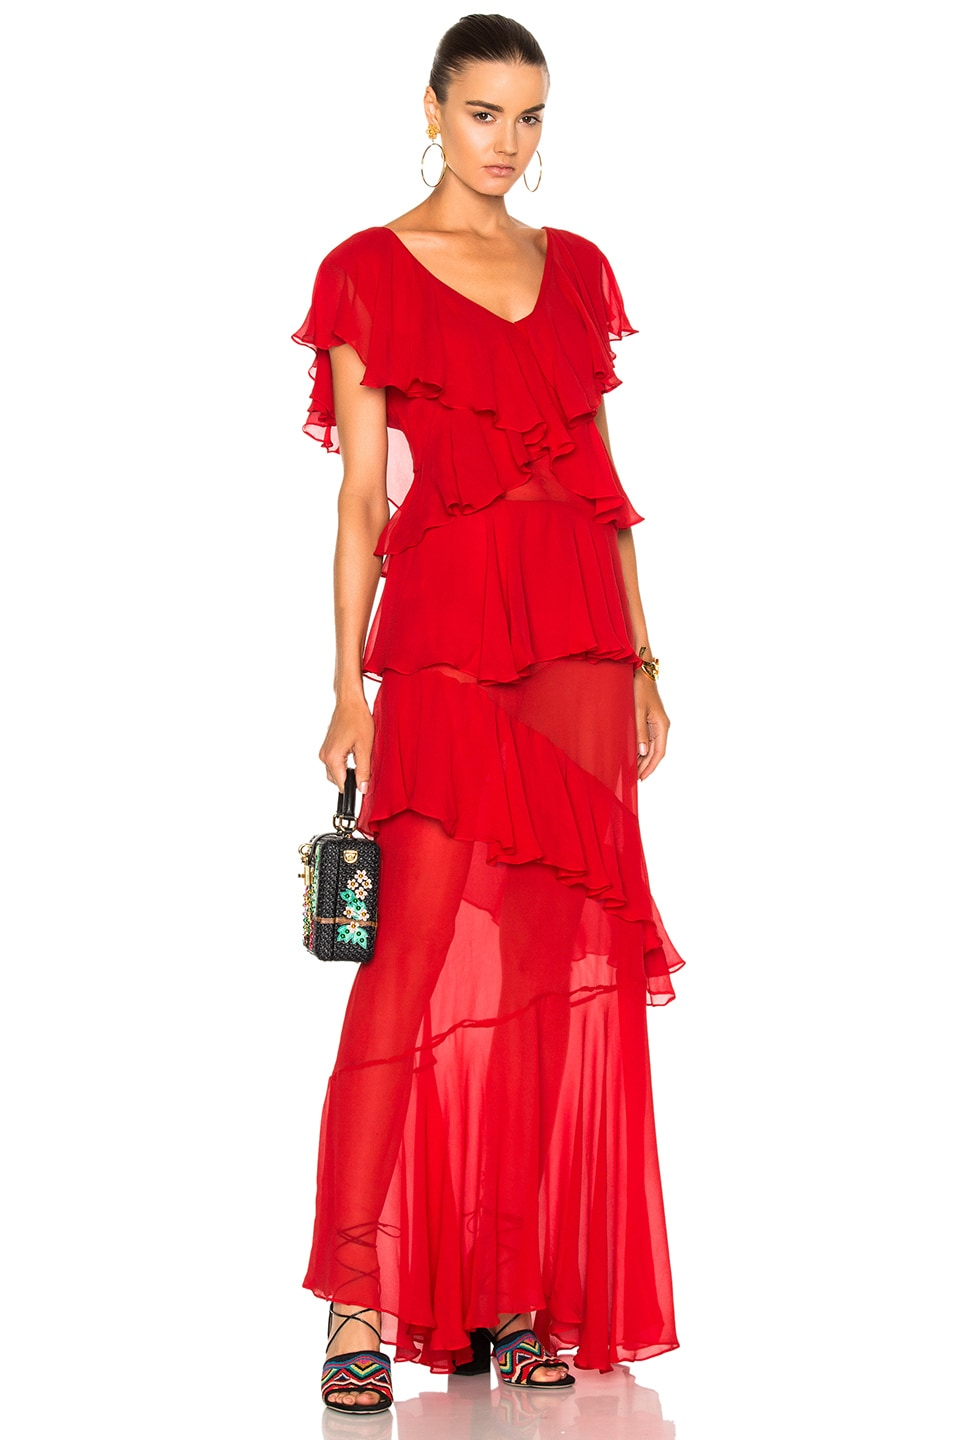 Image 1 of ADRIANA DEGREAS Chine Dress in Red